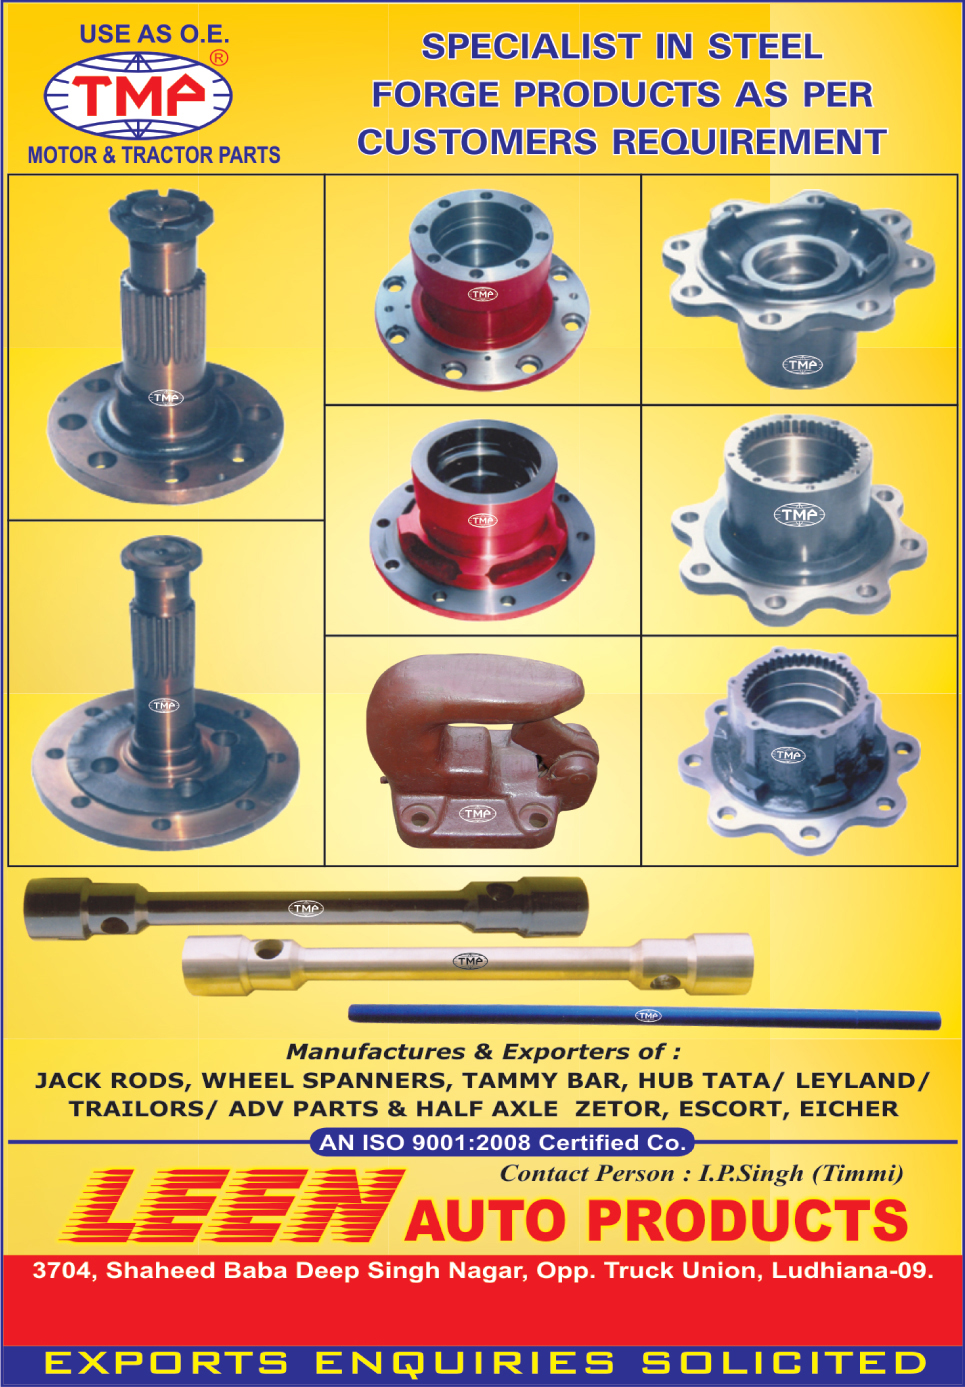 Jack Rods, Wheel Spanners, Tammy Bars, Truck Hubs, Trailer Hubs, Tractor Half Axle, Tractor Parts, Automotive Steel forge Products, Customized Steel Forge Products,Engine Motors, Auto Spare Parts, Tie Rod Ends, Tie Rod Sleeves, Automotive Motor Parts, Tractor Parts, Trailer Parts, ADV Parts, Bracket Cap, Brackets